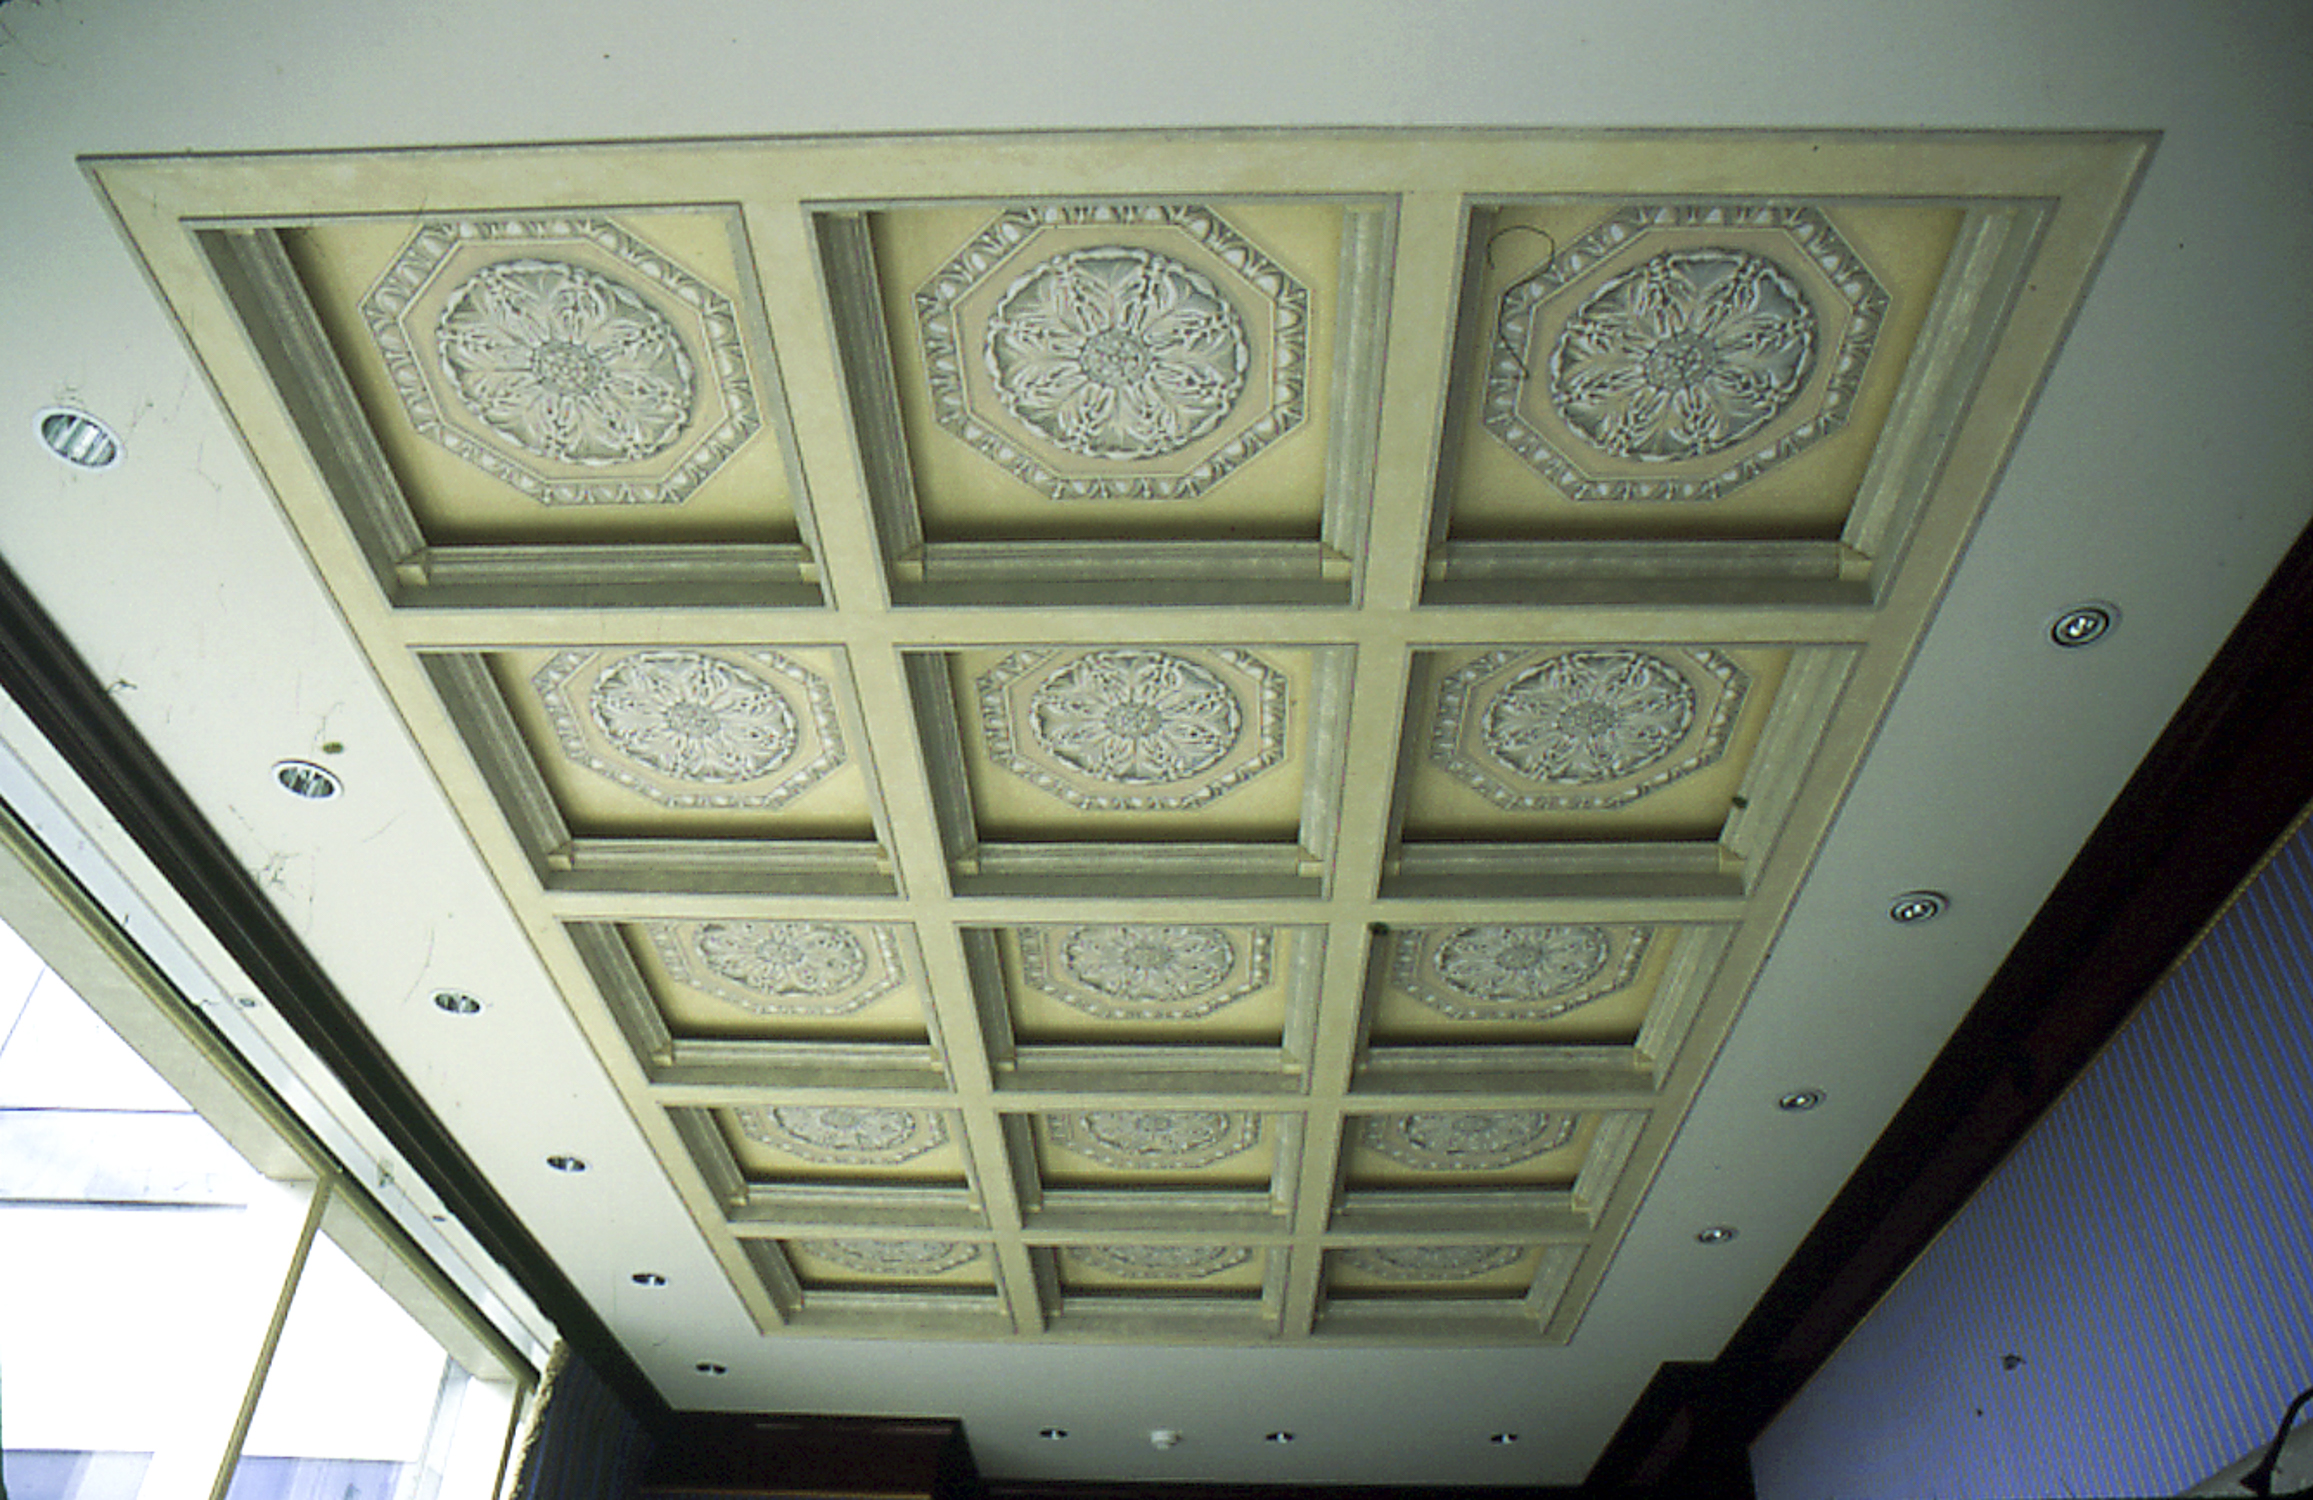 Coffered ceiling with trompe-l'œil painted rosettes, New York